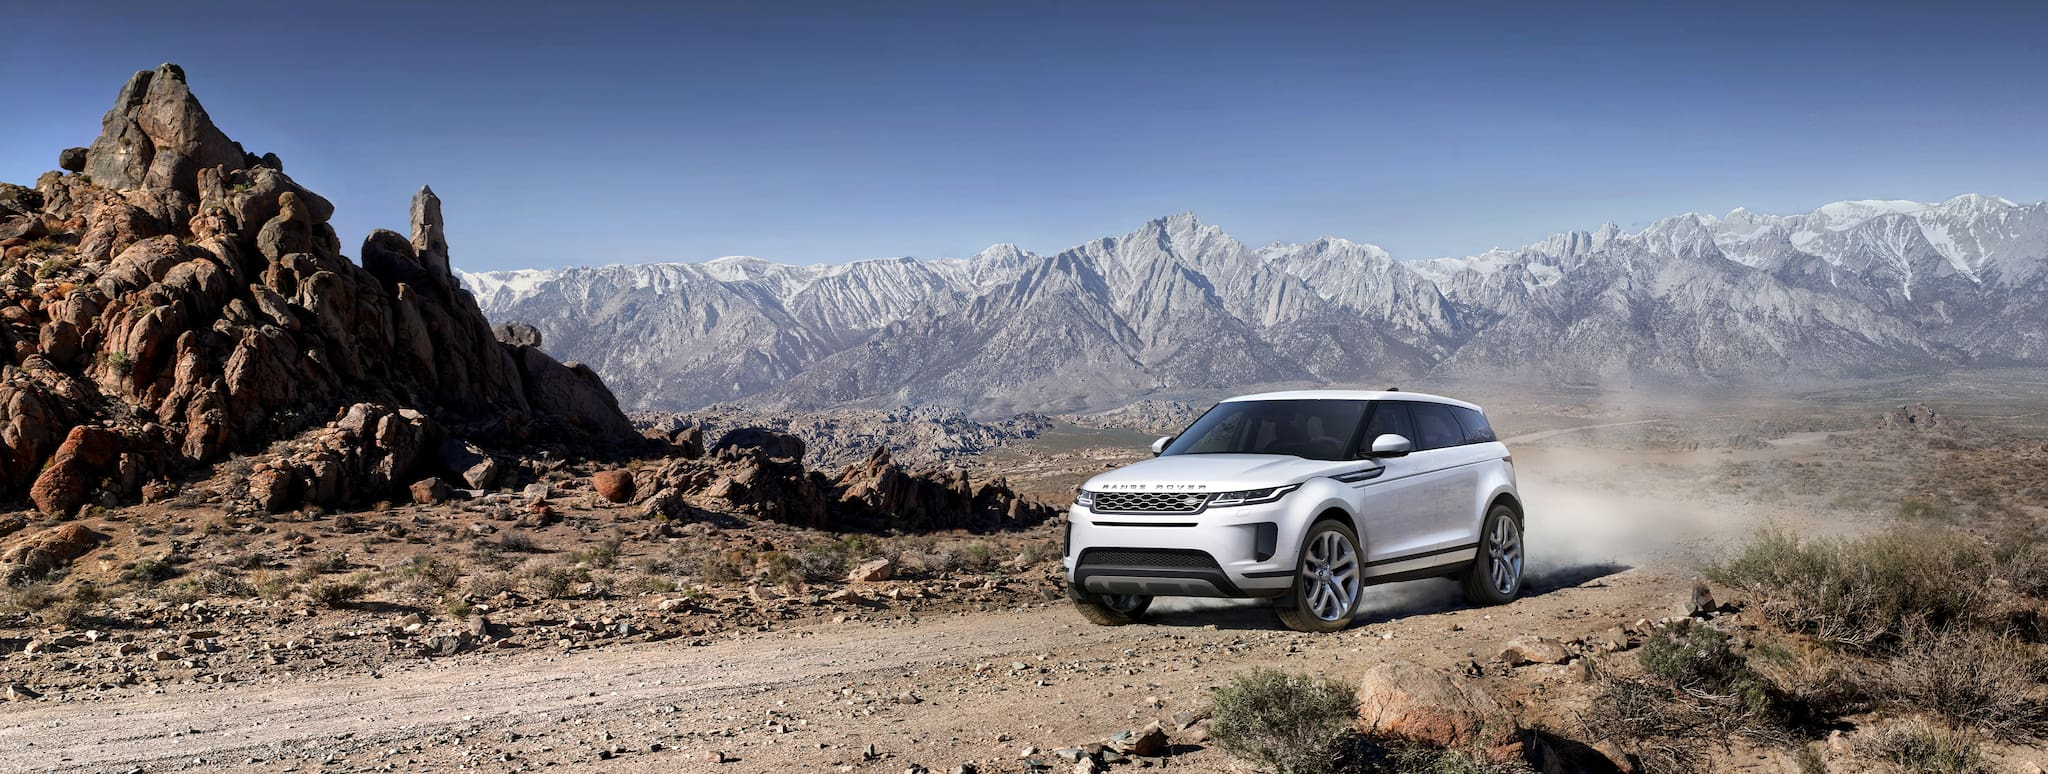 Here's the All-New, Second-Generation Range Rover Evoque